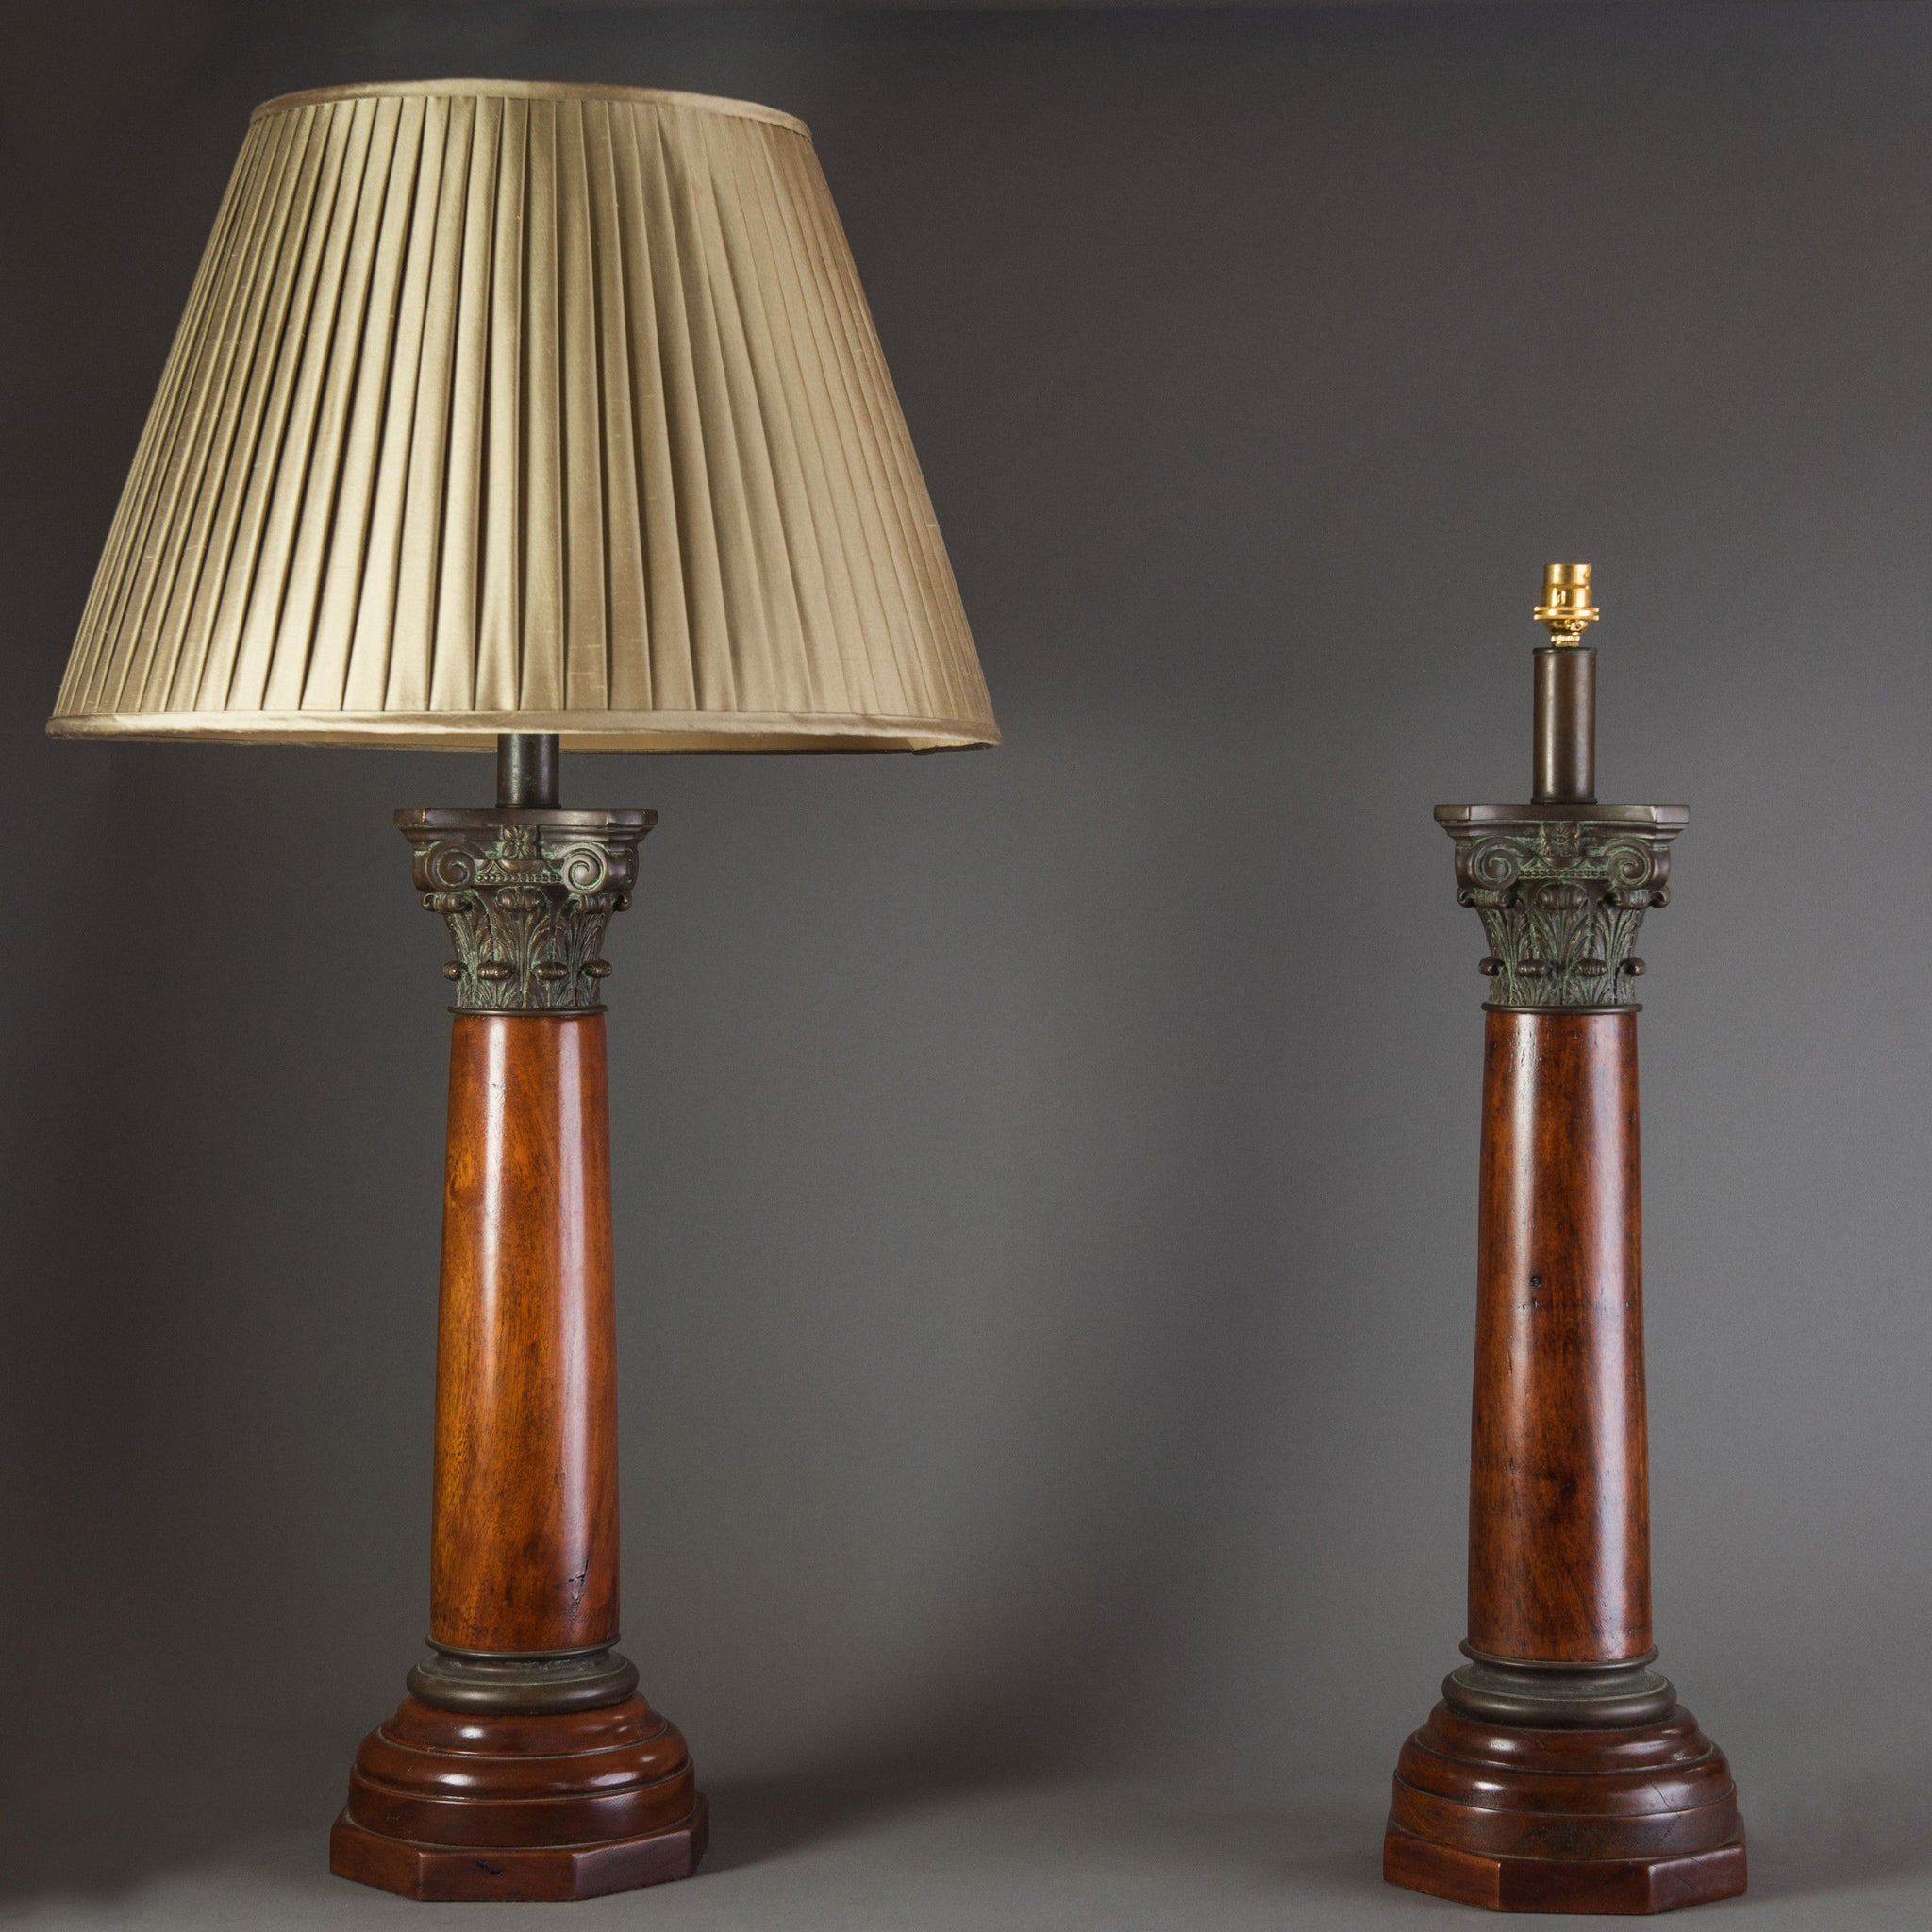 Pair of Corinthian Column Lamps